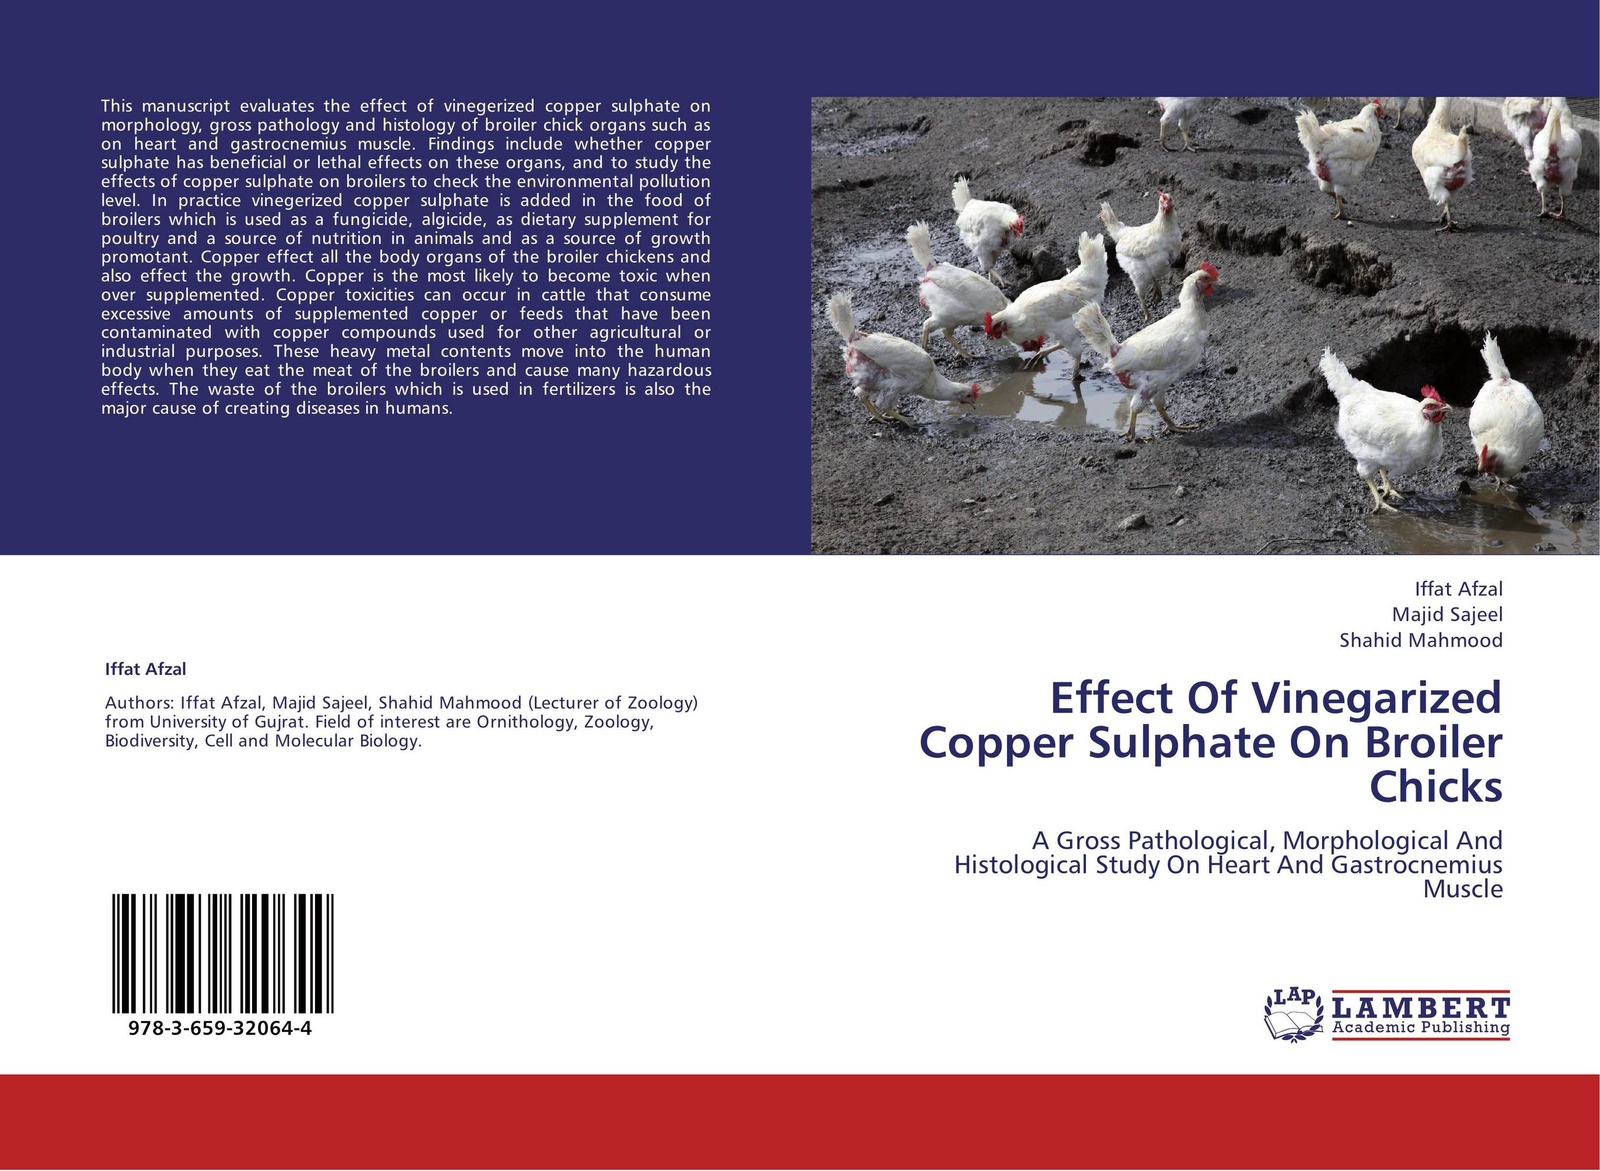 Iffat Afzal,Majid Sajeel and Shahid Mahmood Effect Of Vinegarized Copper Sulphate On Broiler Chicks